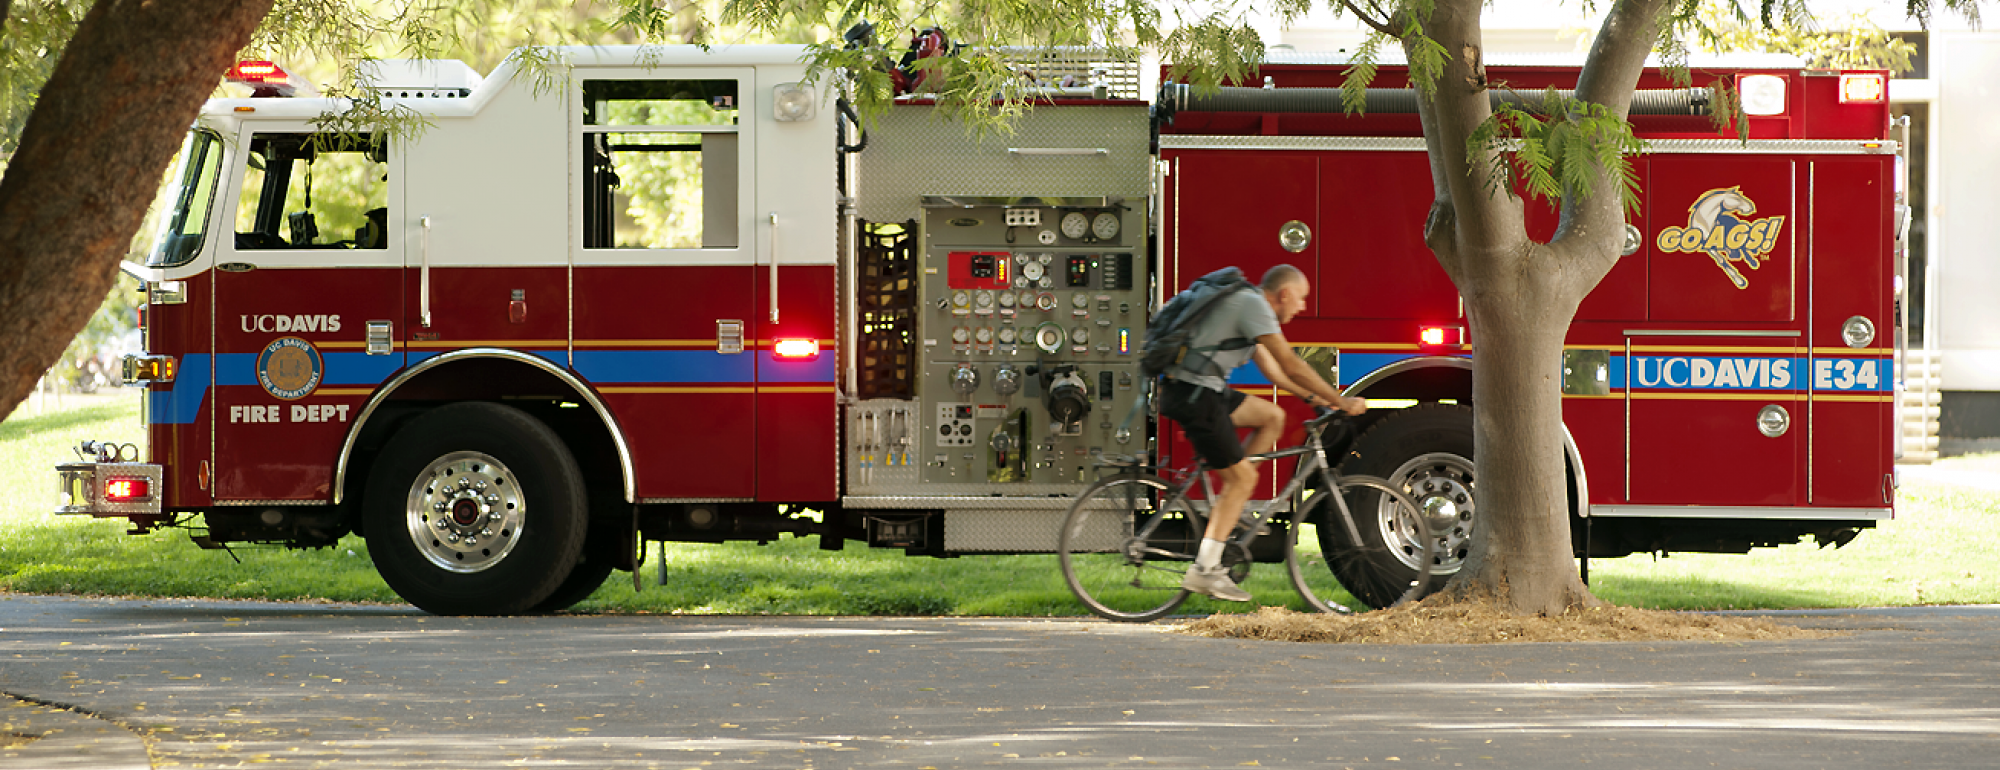 UC Davis Fire Department Engine 34 with bicyclist riding by.